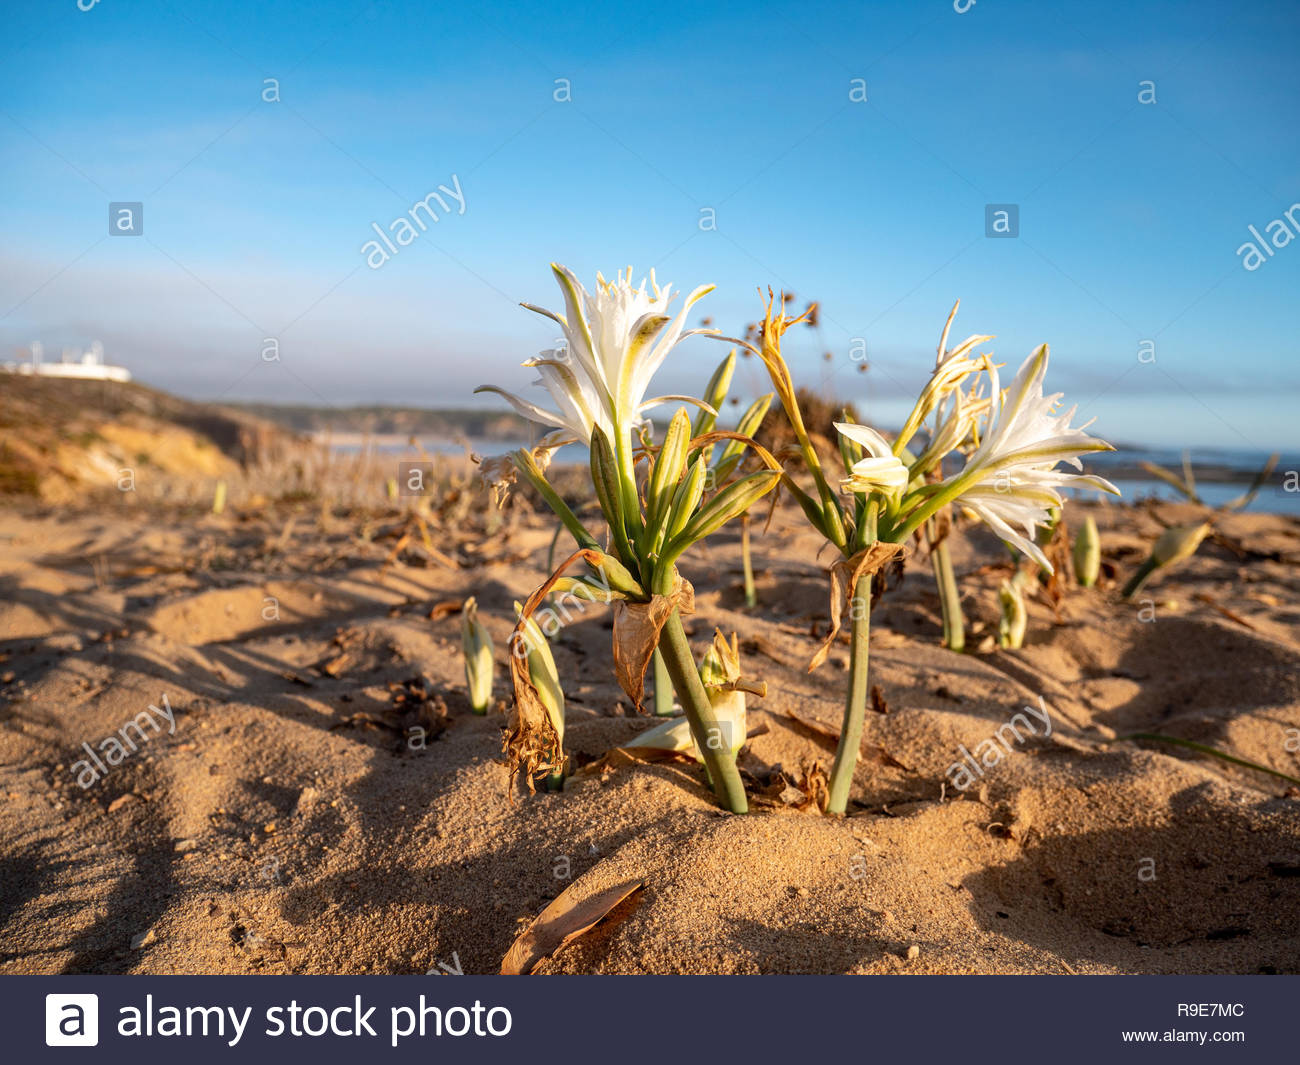 Flower on a cliff growing in sand at the atlantic ocean in Portugal, Europe. Stunning mediterranien vegetation and plants in summer. Stock Photo